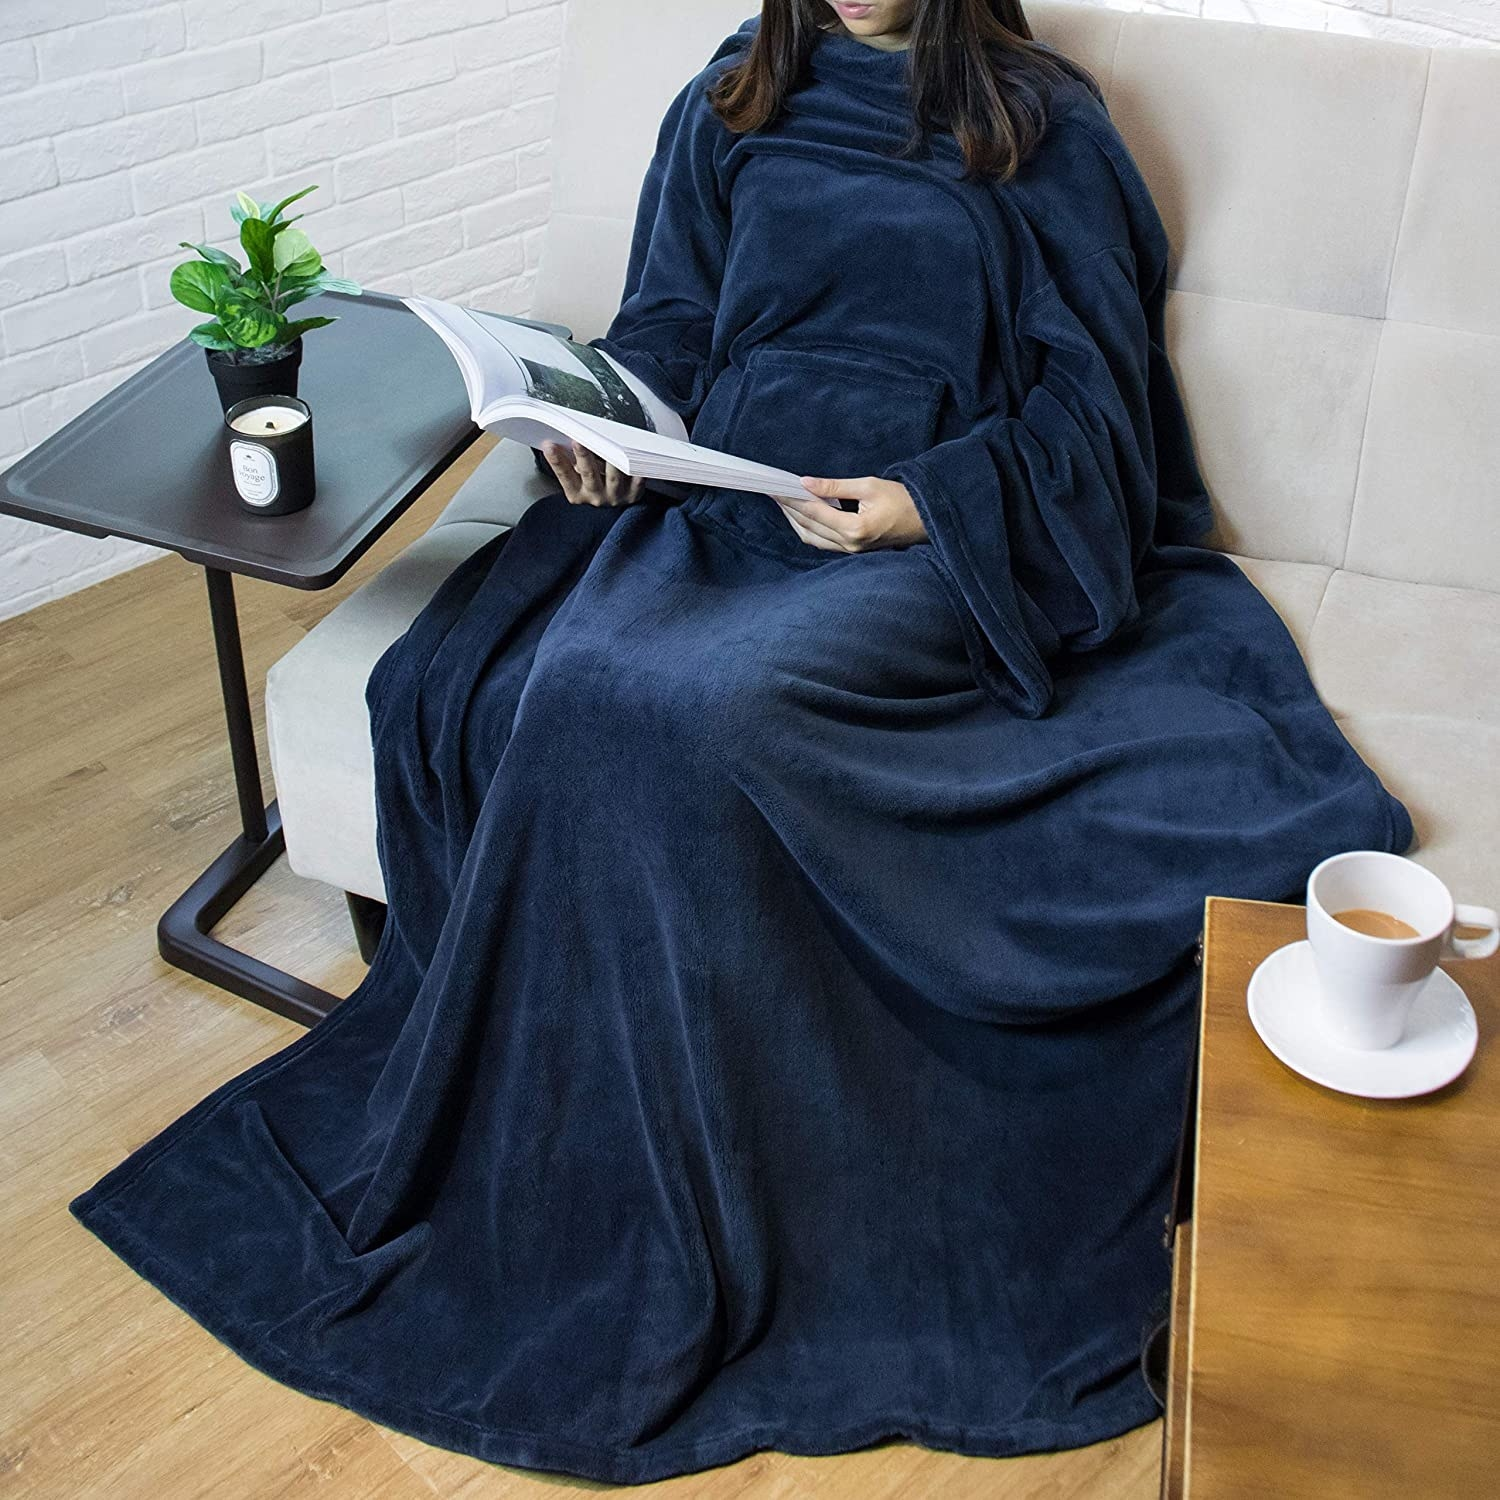 A person sitting on a sofa and reading while wearing the blanket robe.